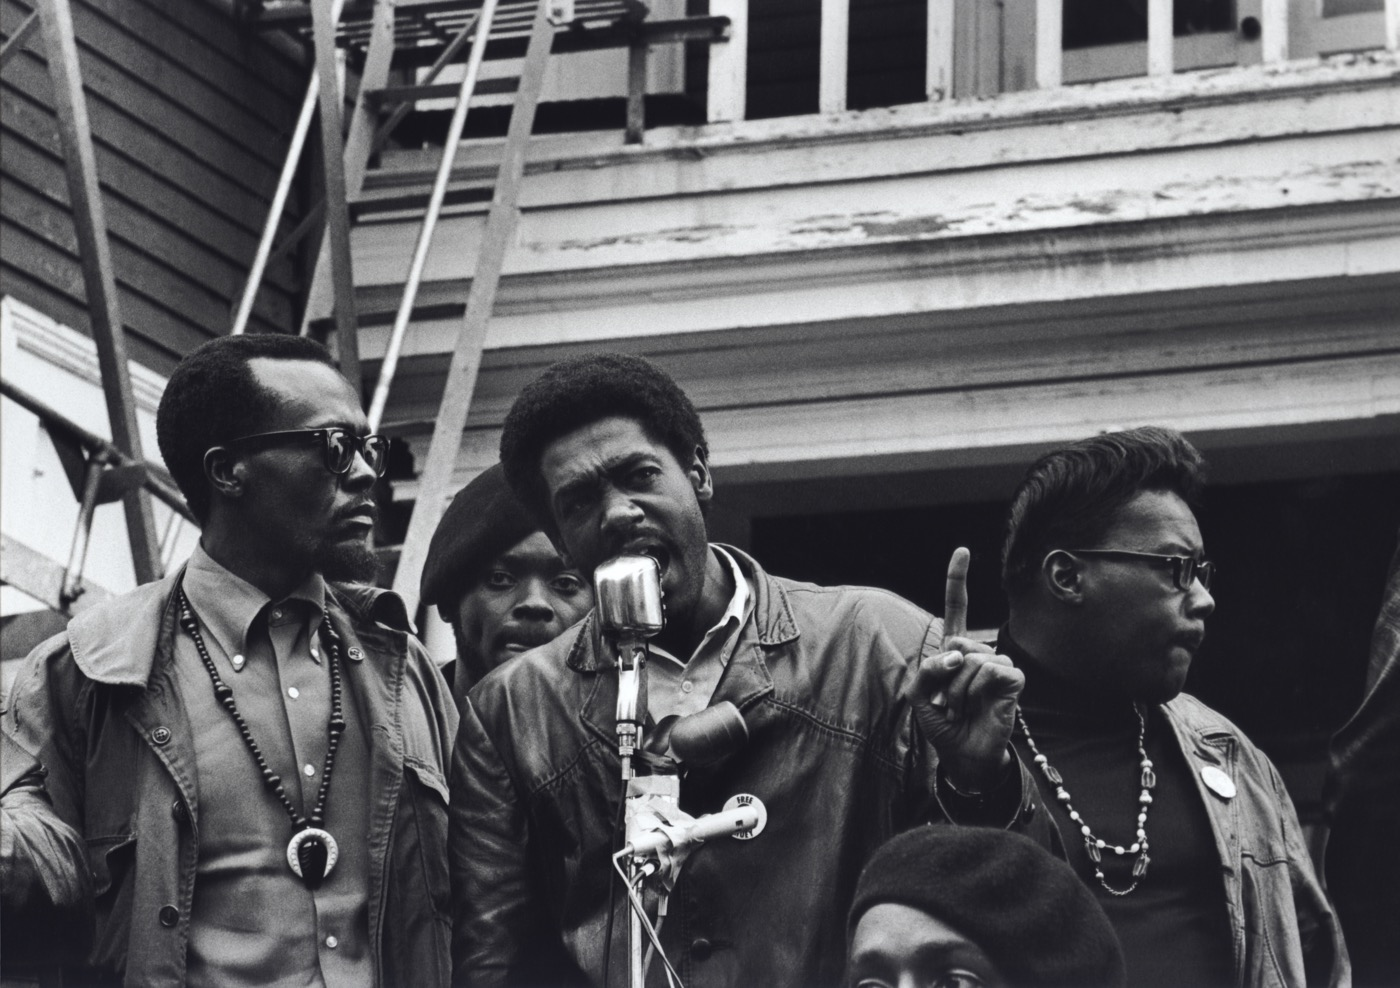 Stephen Shames Oakland, California, USA: Black Panther Chairman and co-founder Bobby Seale speaks at a Free Huey rally in Defermery Park (named by the Panthers Bobby Hutton Park) in West Oakland. Left of Seale is Bill Brent, who later went to Cuba. Right is Wilford Hol, July 28, 1968 Gelatin silver, printed 2006 16 x 20 in Signed and numbered by photographer verso; Edition of 8 + 2 Aps